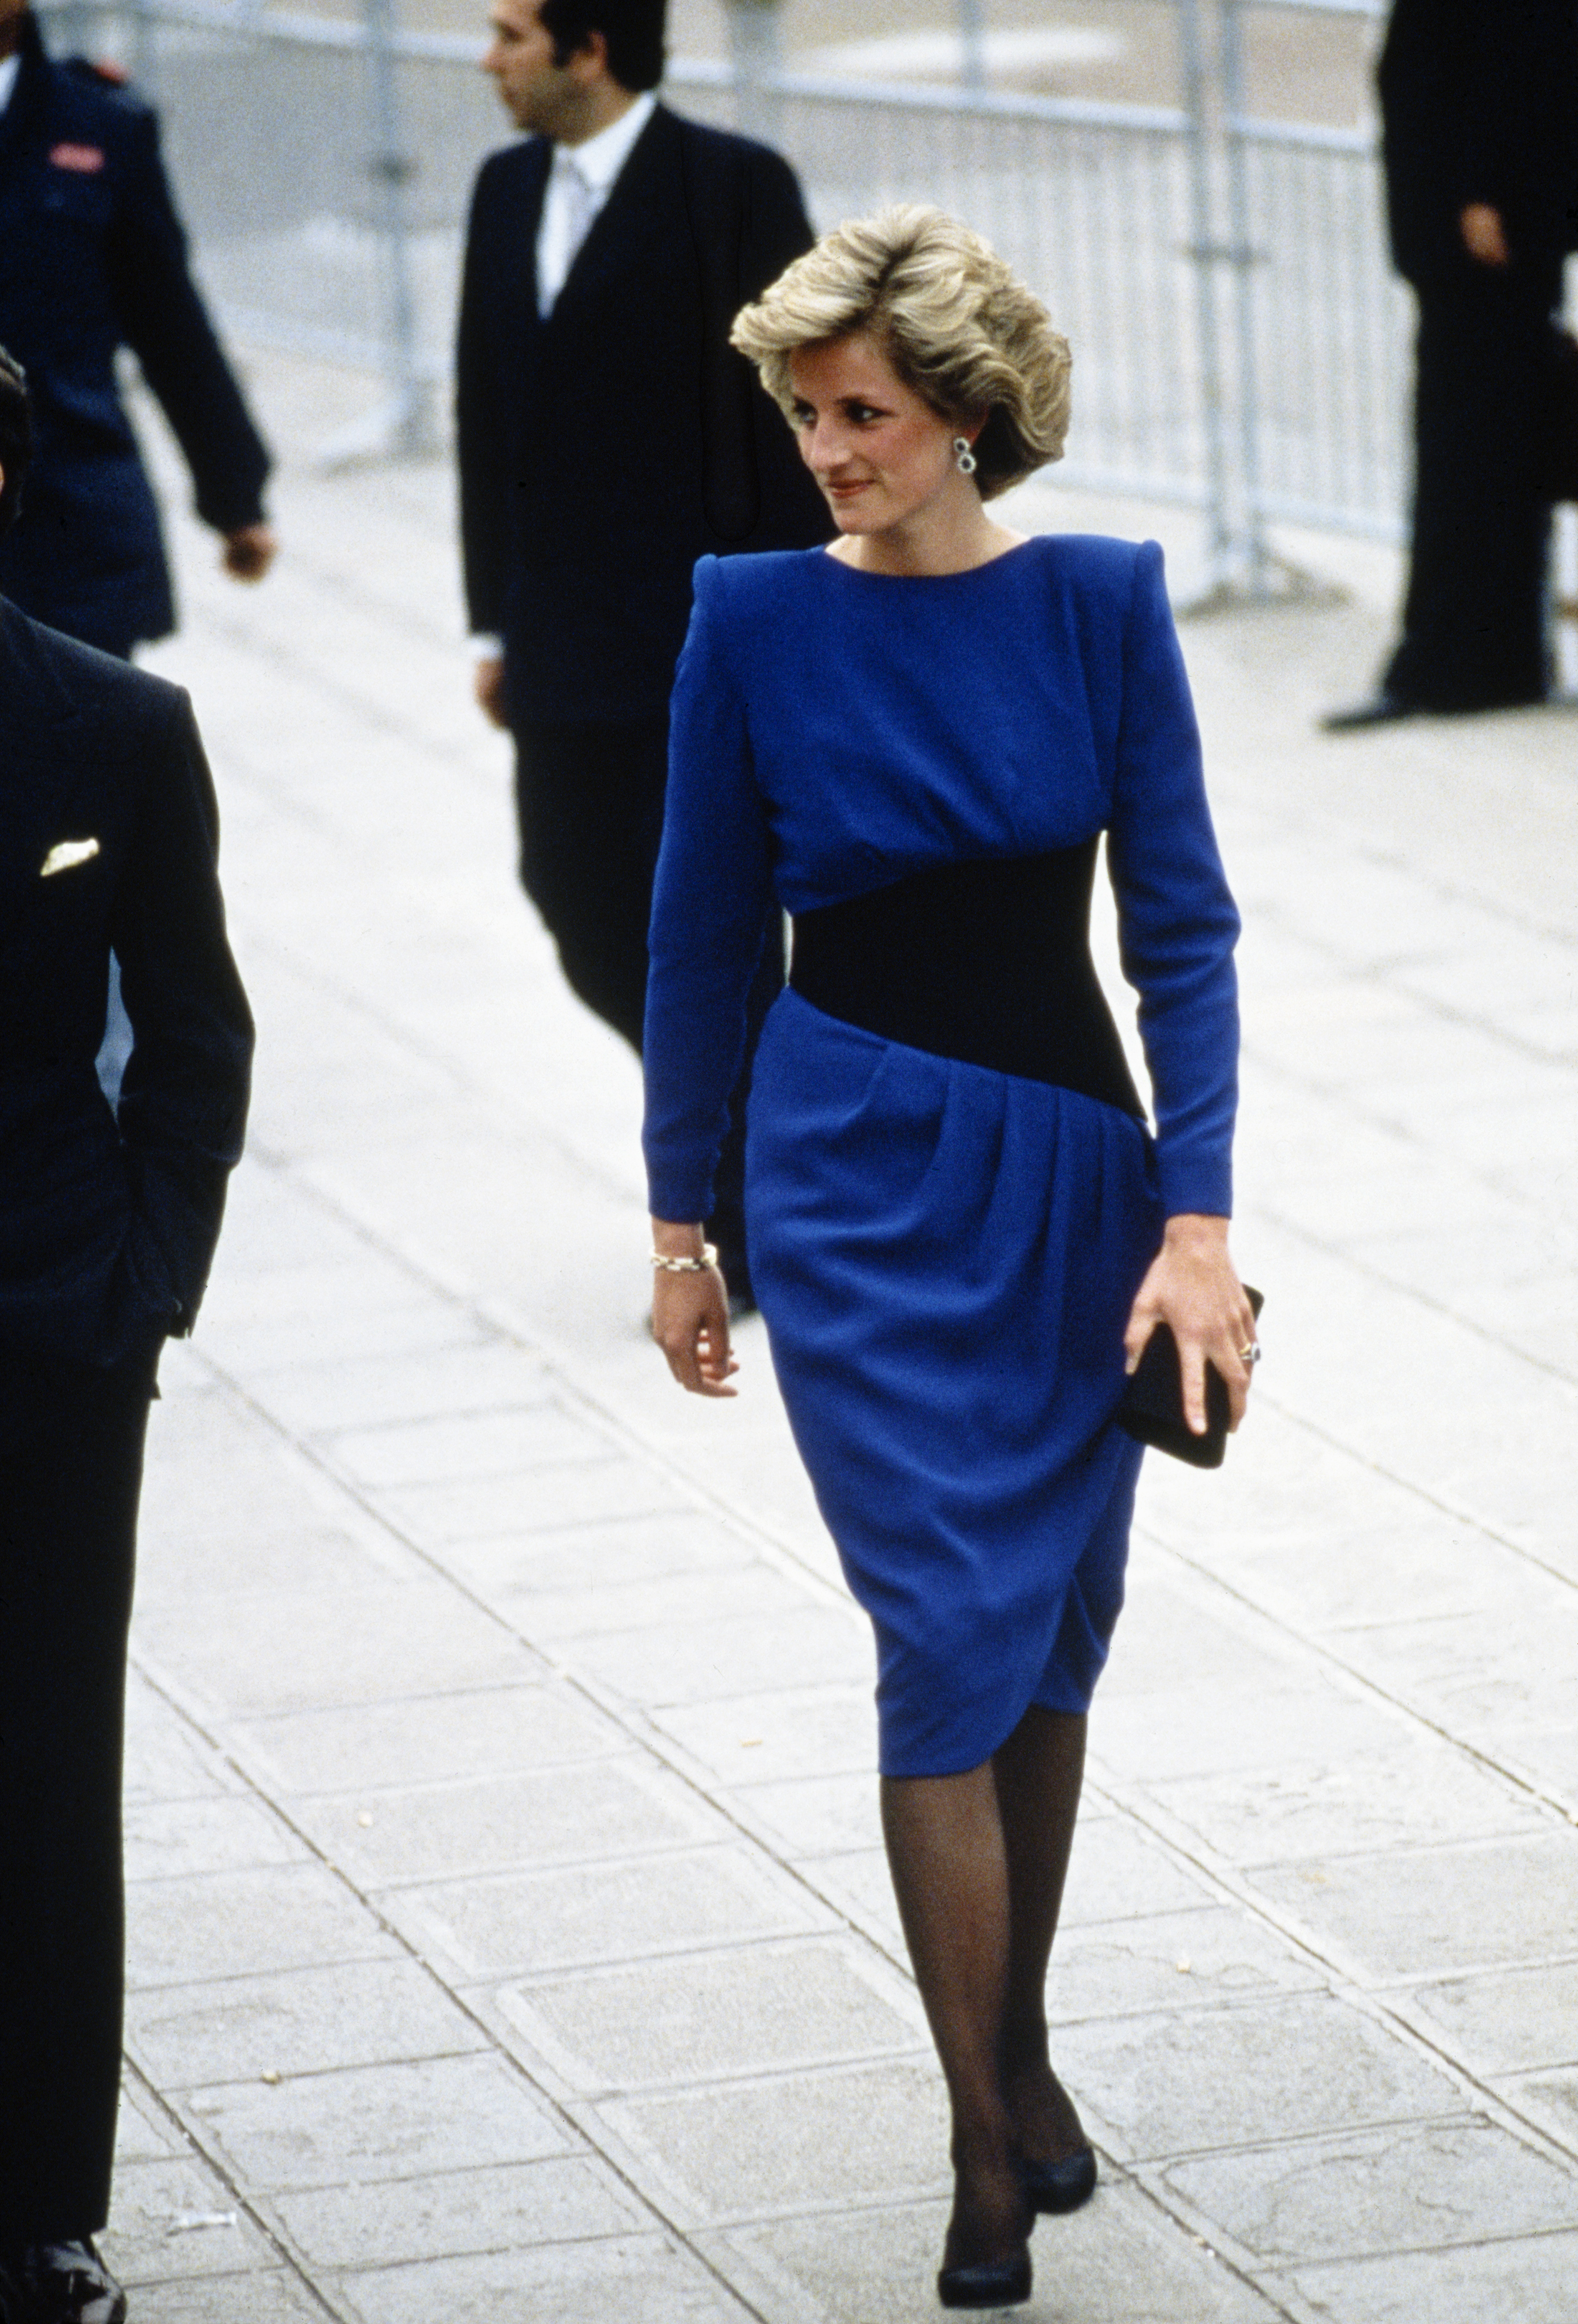 As Diana became more comfortable with her role as the princess, she took more style risks, like this angular, shoulder pad-adorned blue Bruce Oldfield dress with a nipped-in waist that she wore in Venice in May 1985.